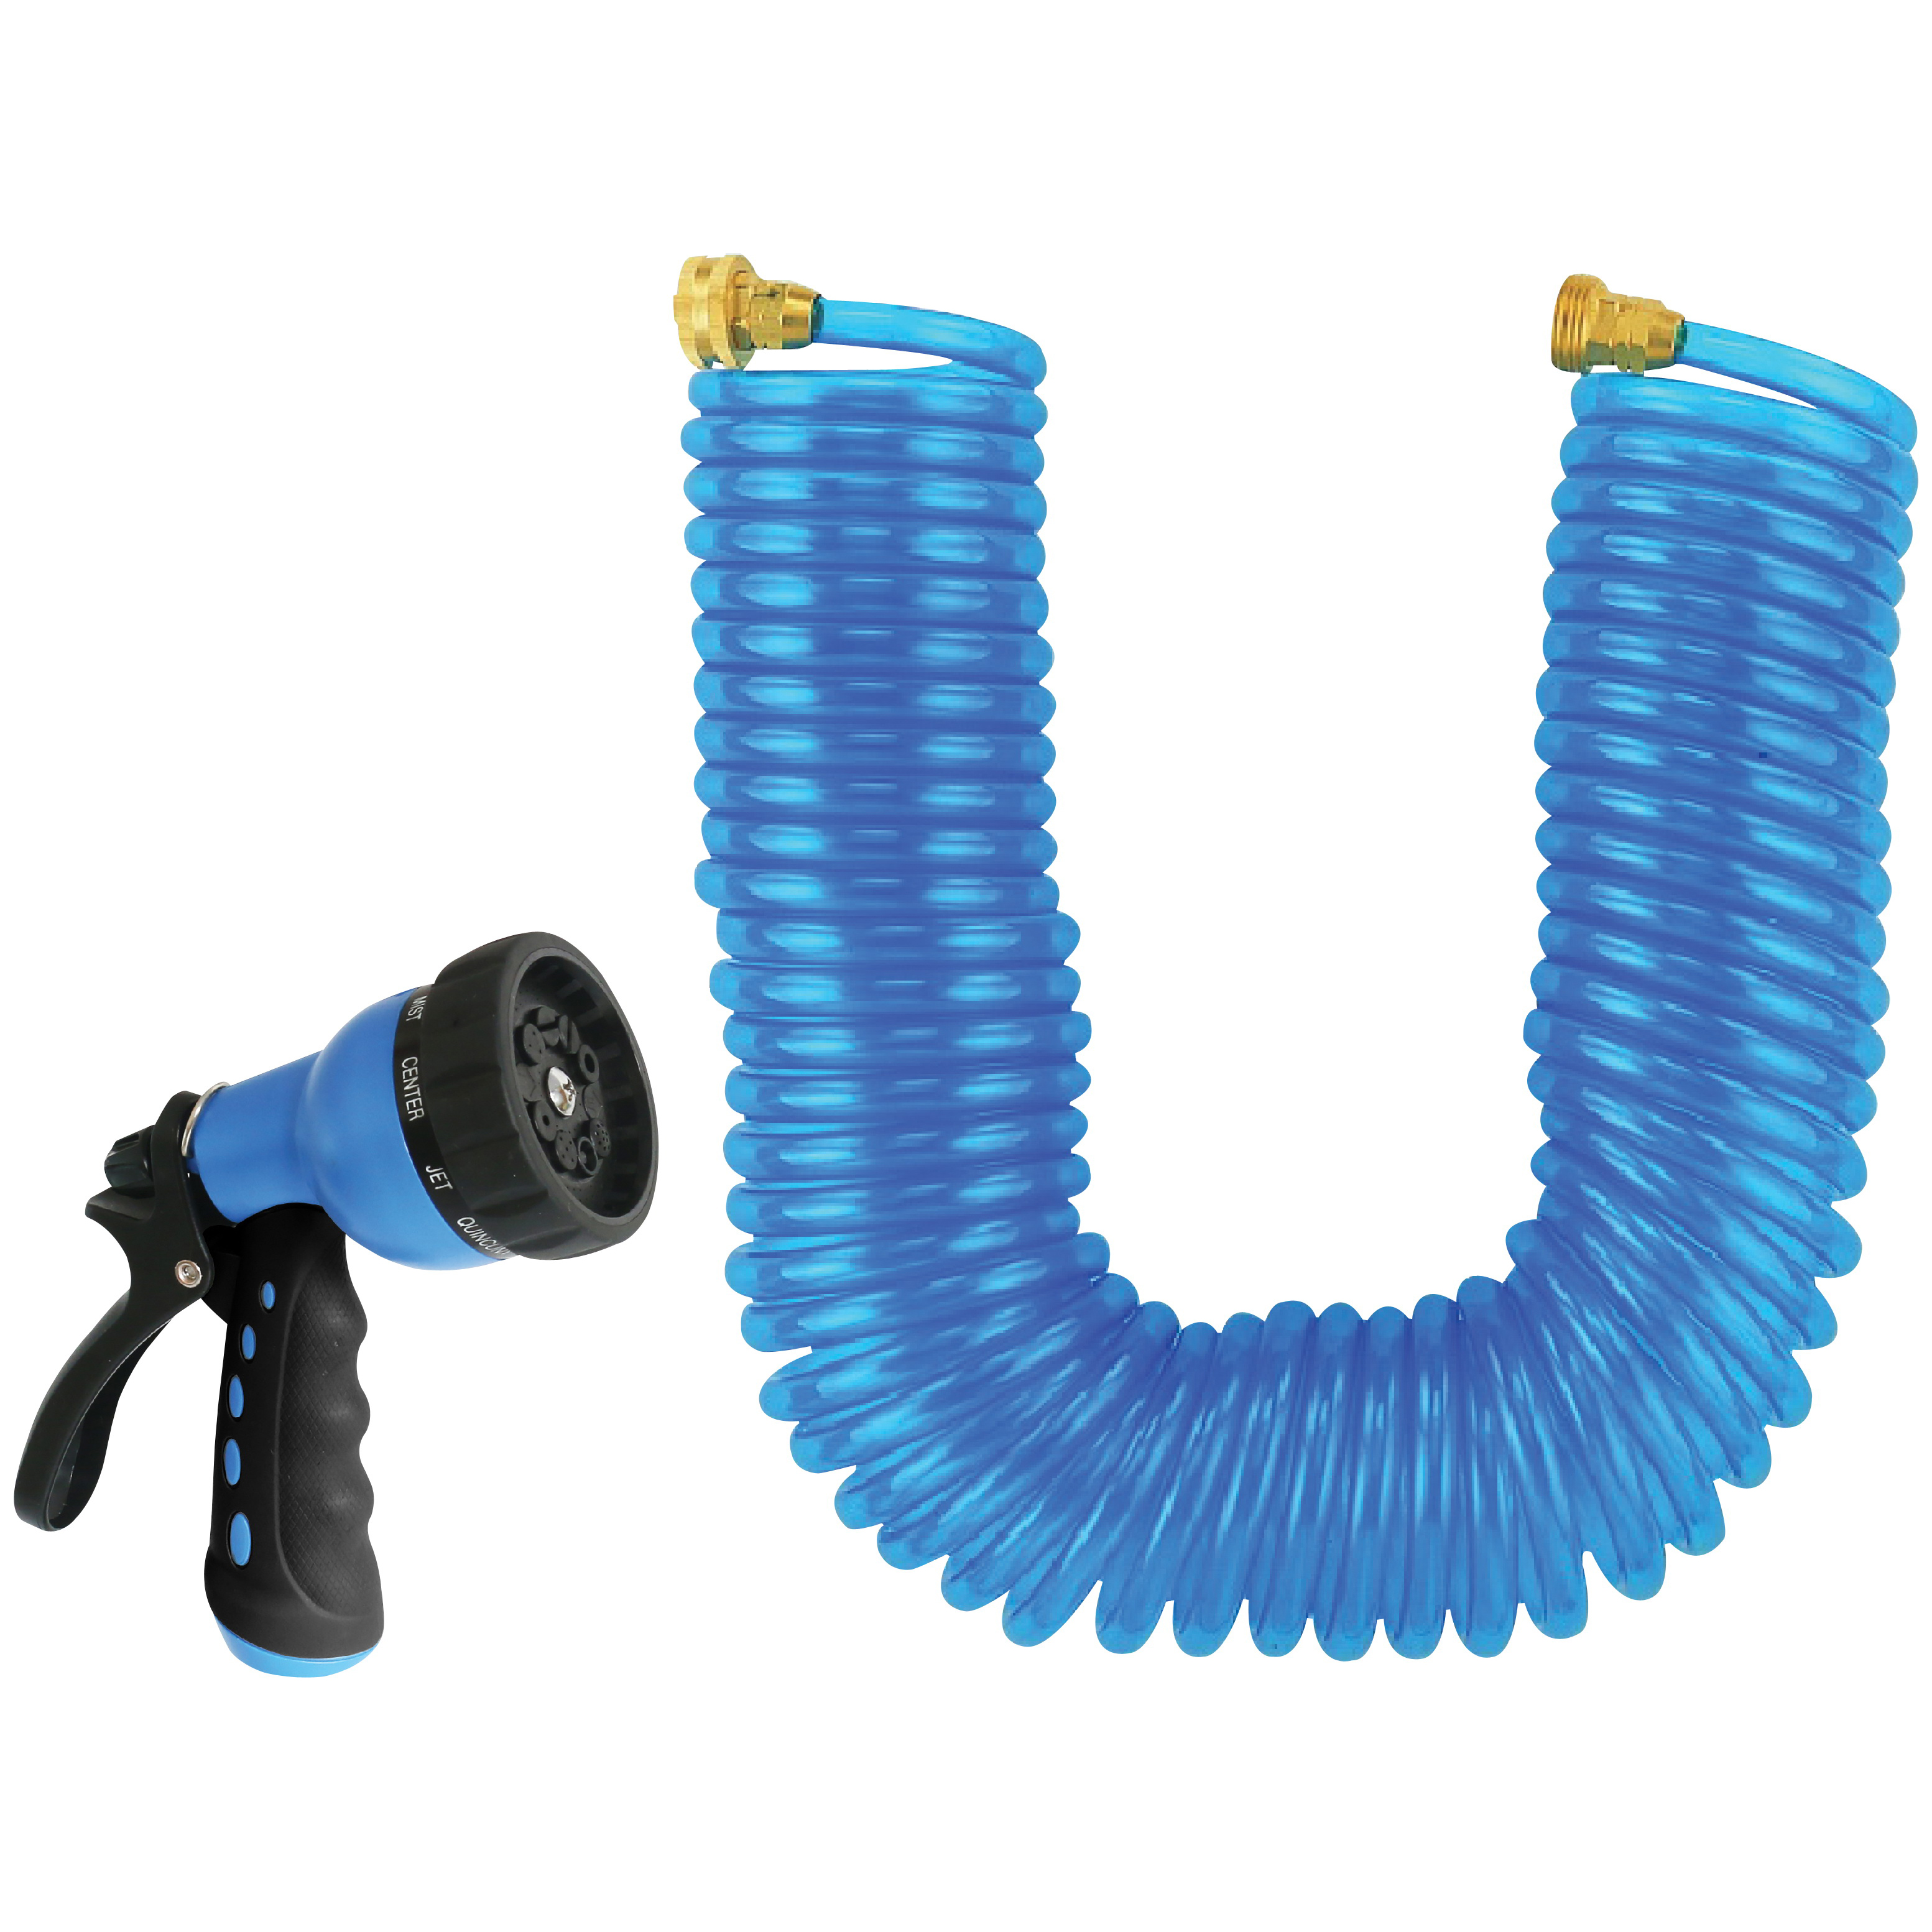 Picture of Landscapers Select GT-445030 Coil Hose with Nozzle Set, 50 ft L, Female x Male, PVC, Blue